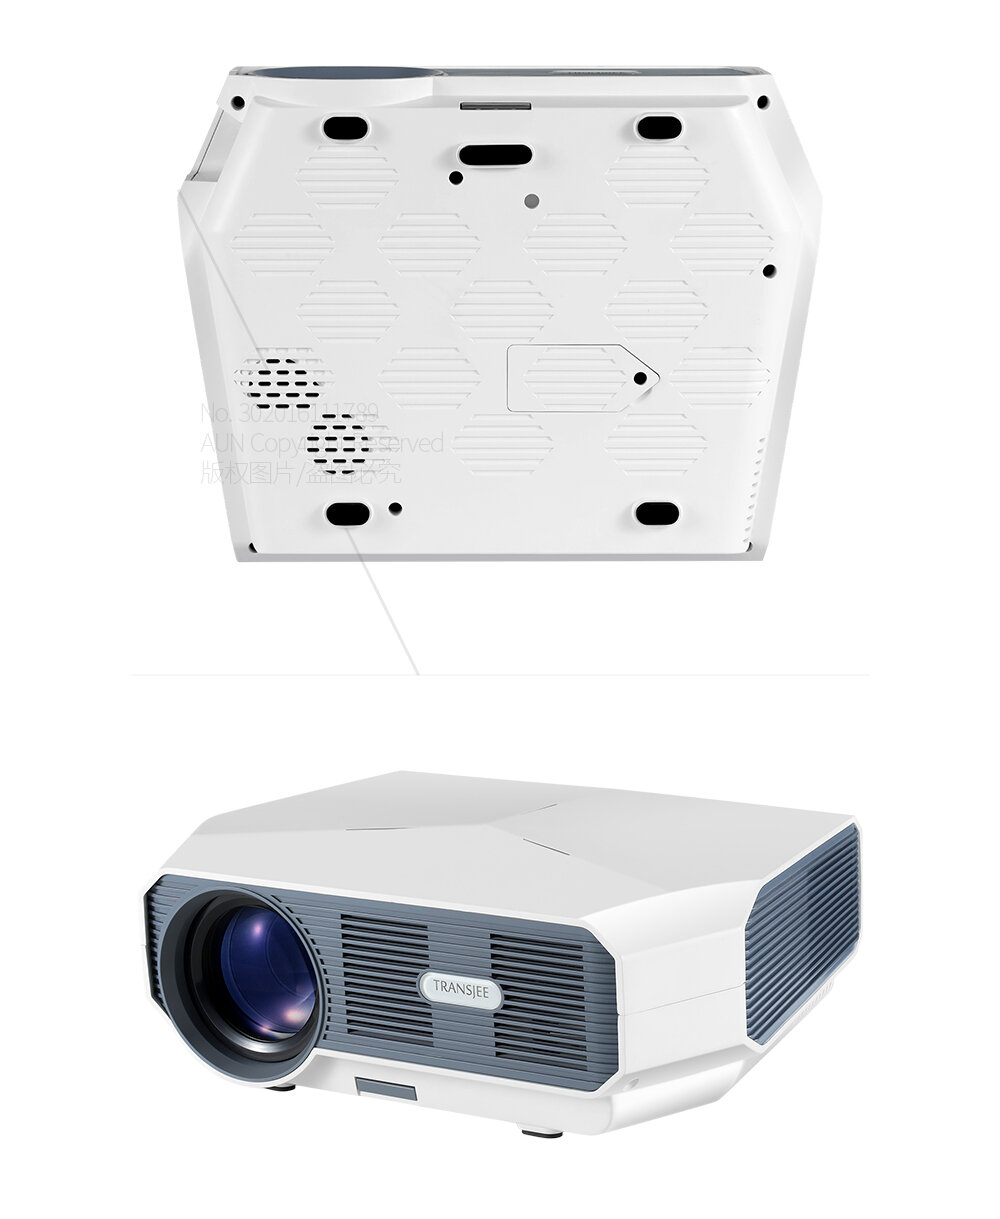 AUN ET10-AD LED Projector 3800 Lumen Android 6.0 1GB+8GB Wi-Fi Bluetooth Support 1080P 3000: 1 Contrast Ratio Video 3D Mini Beamer